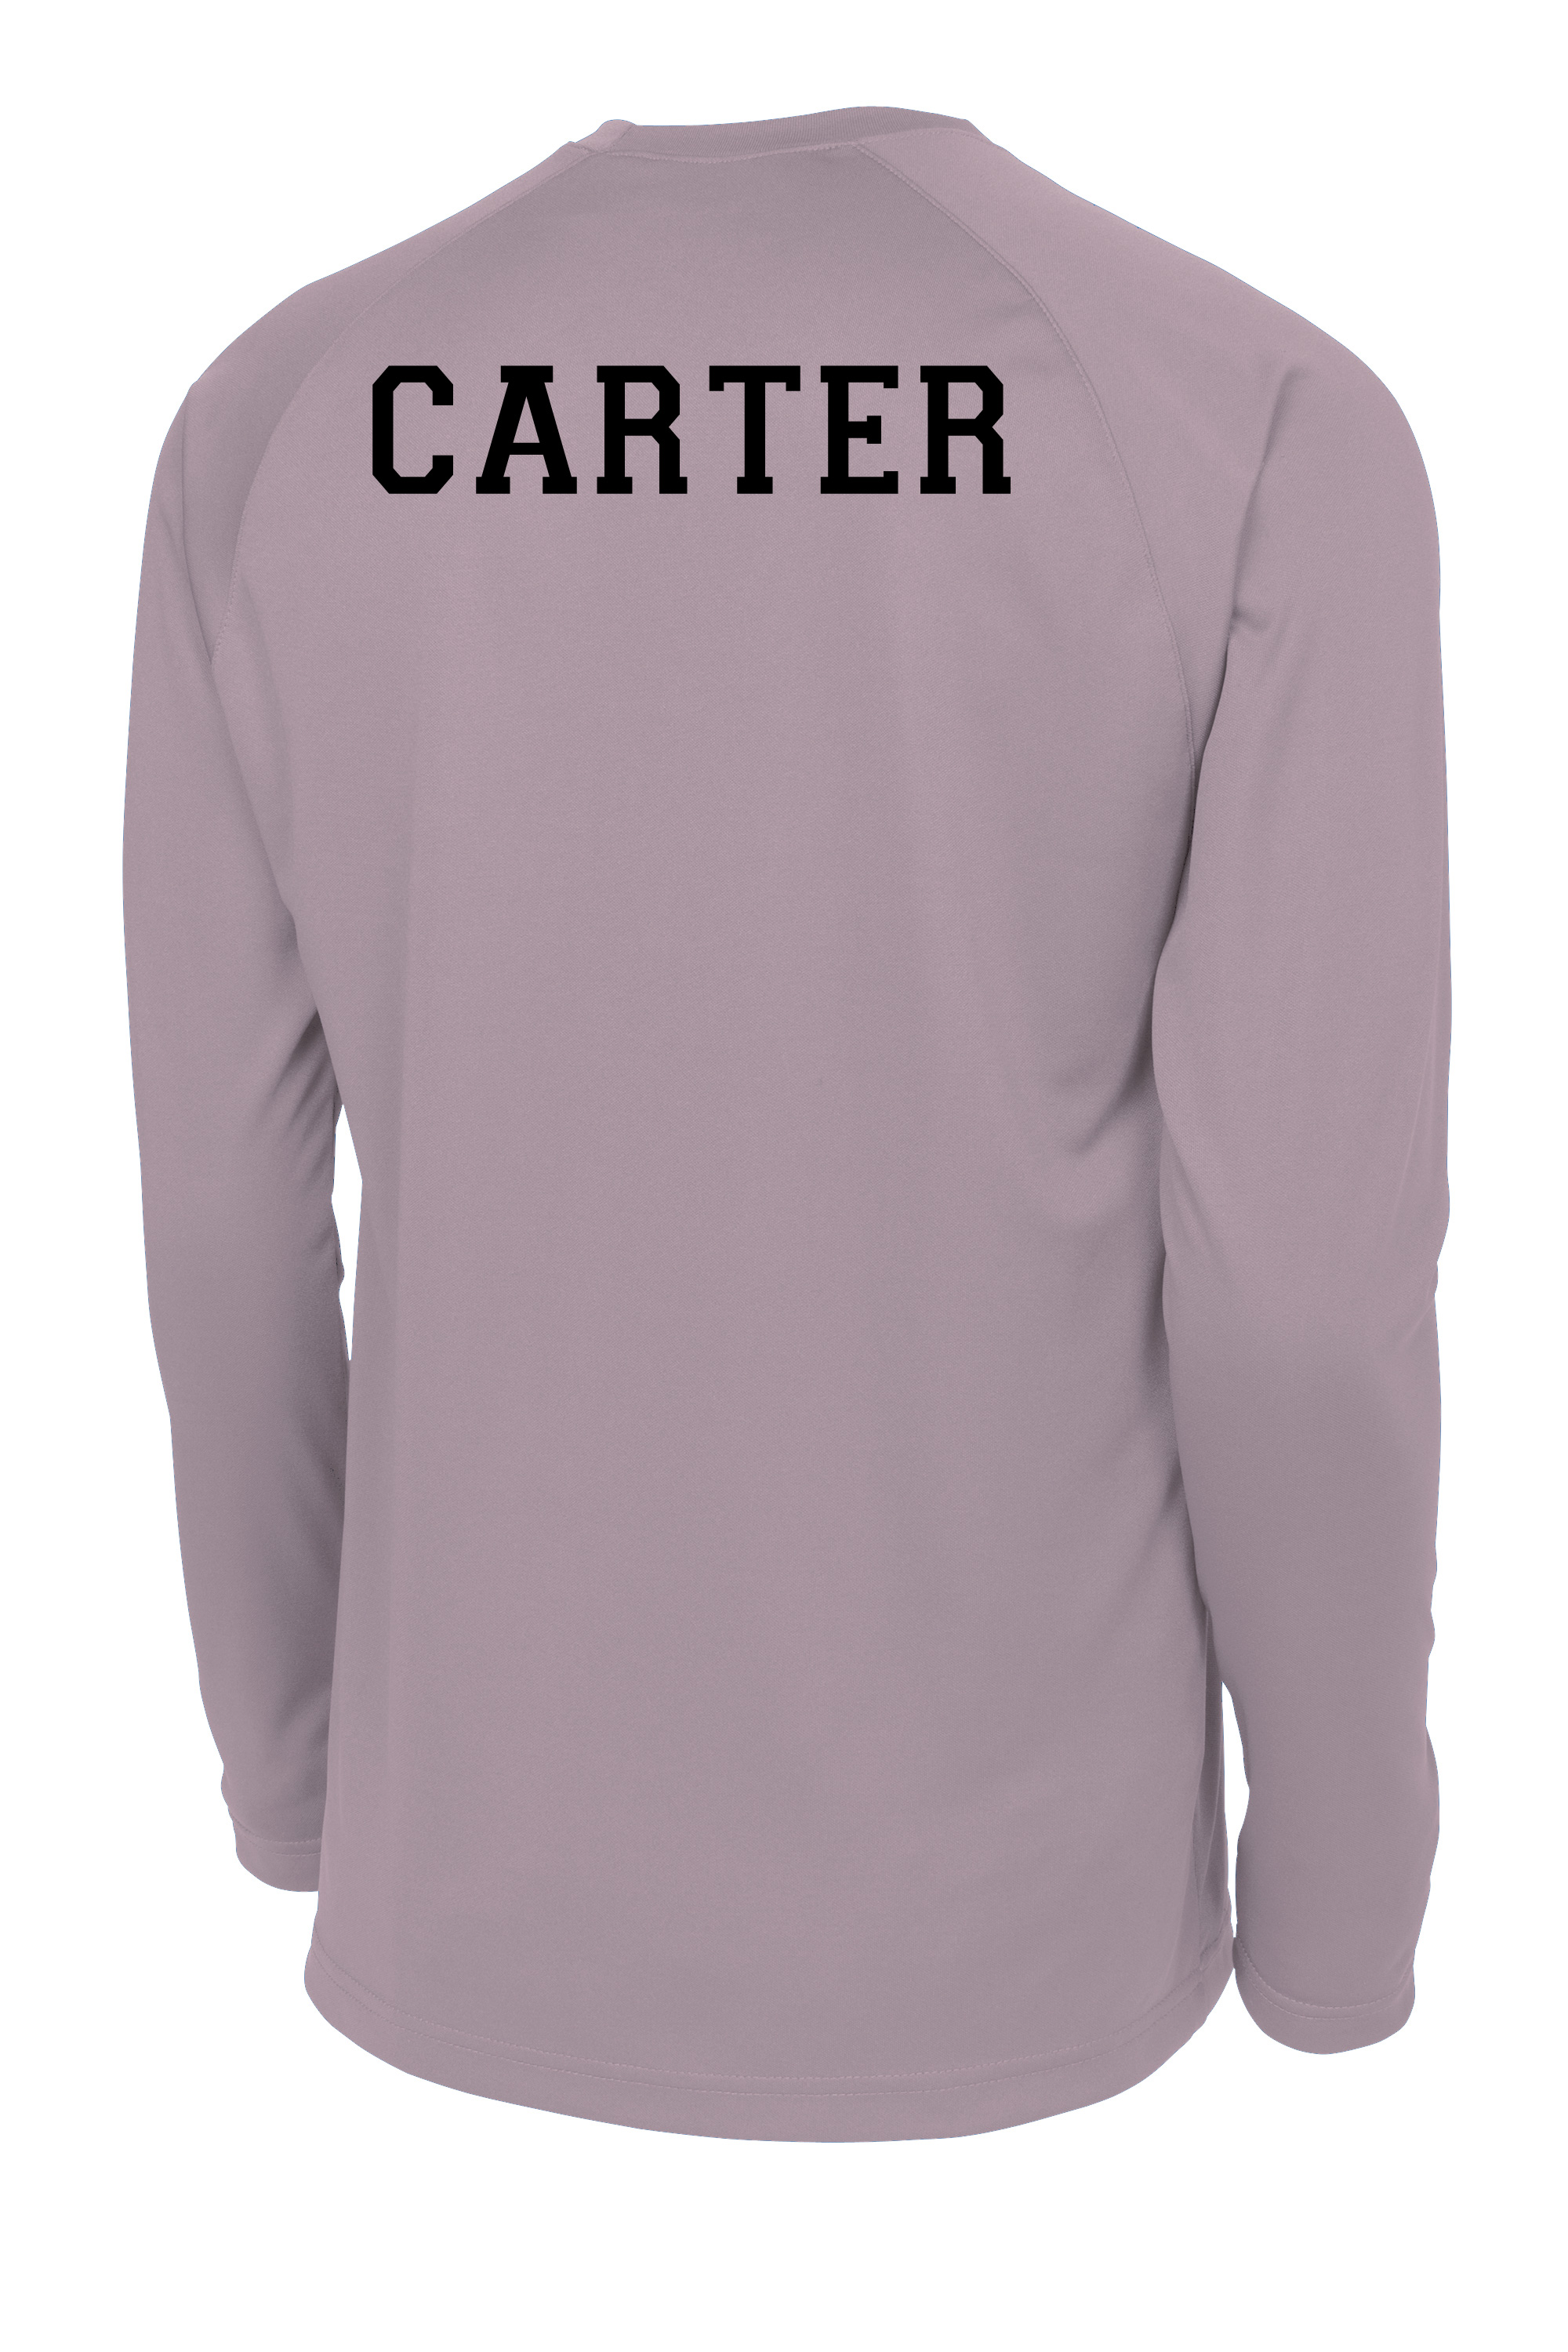 C4 long-sleeve basketball shooting shirt with name on back by Code Four Athletics in athletic grey